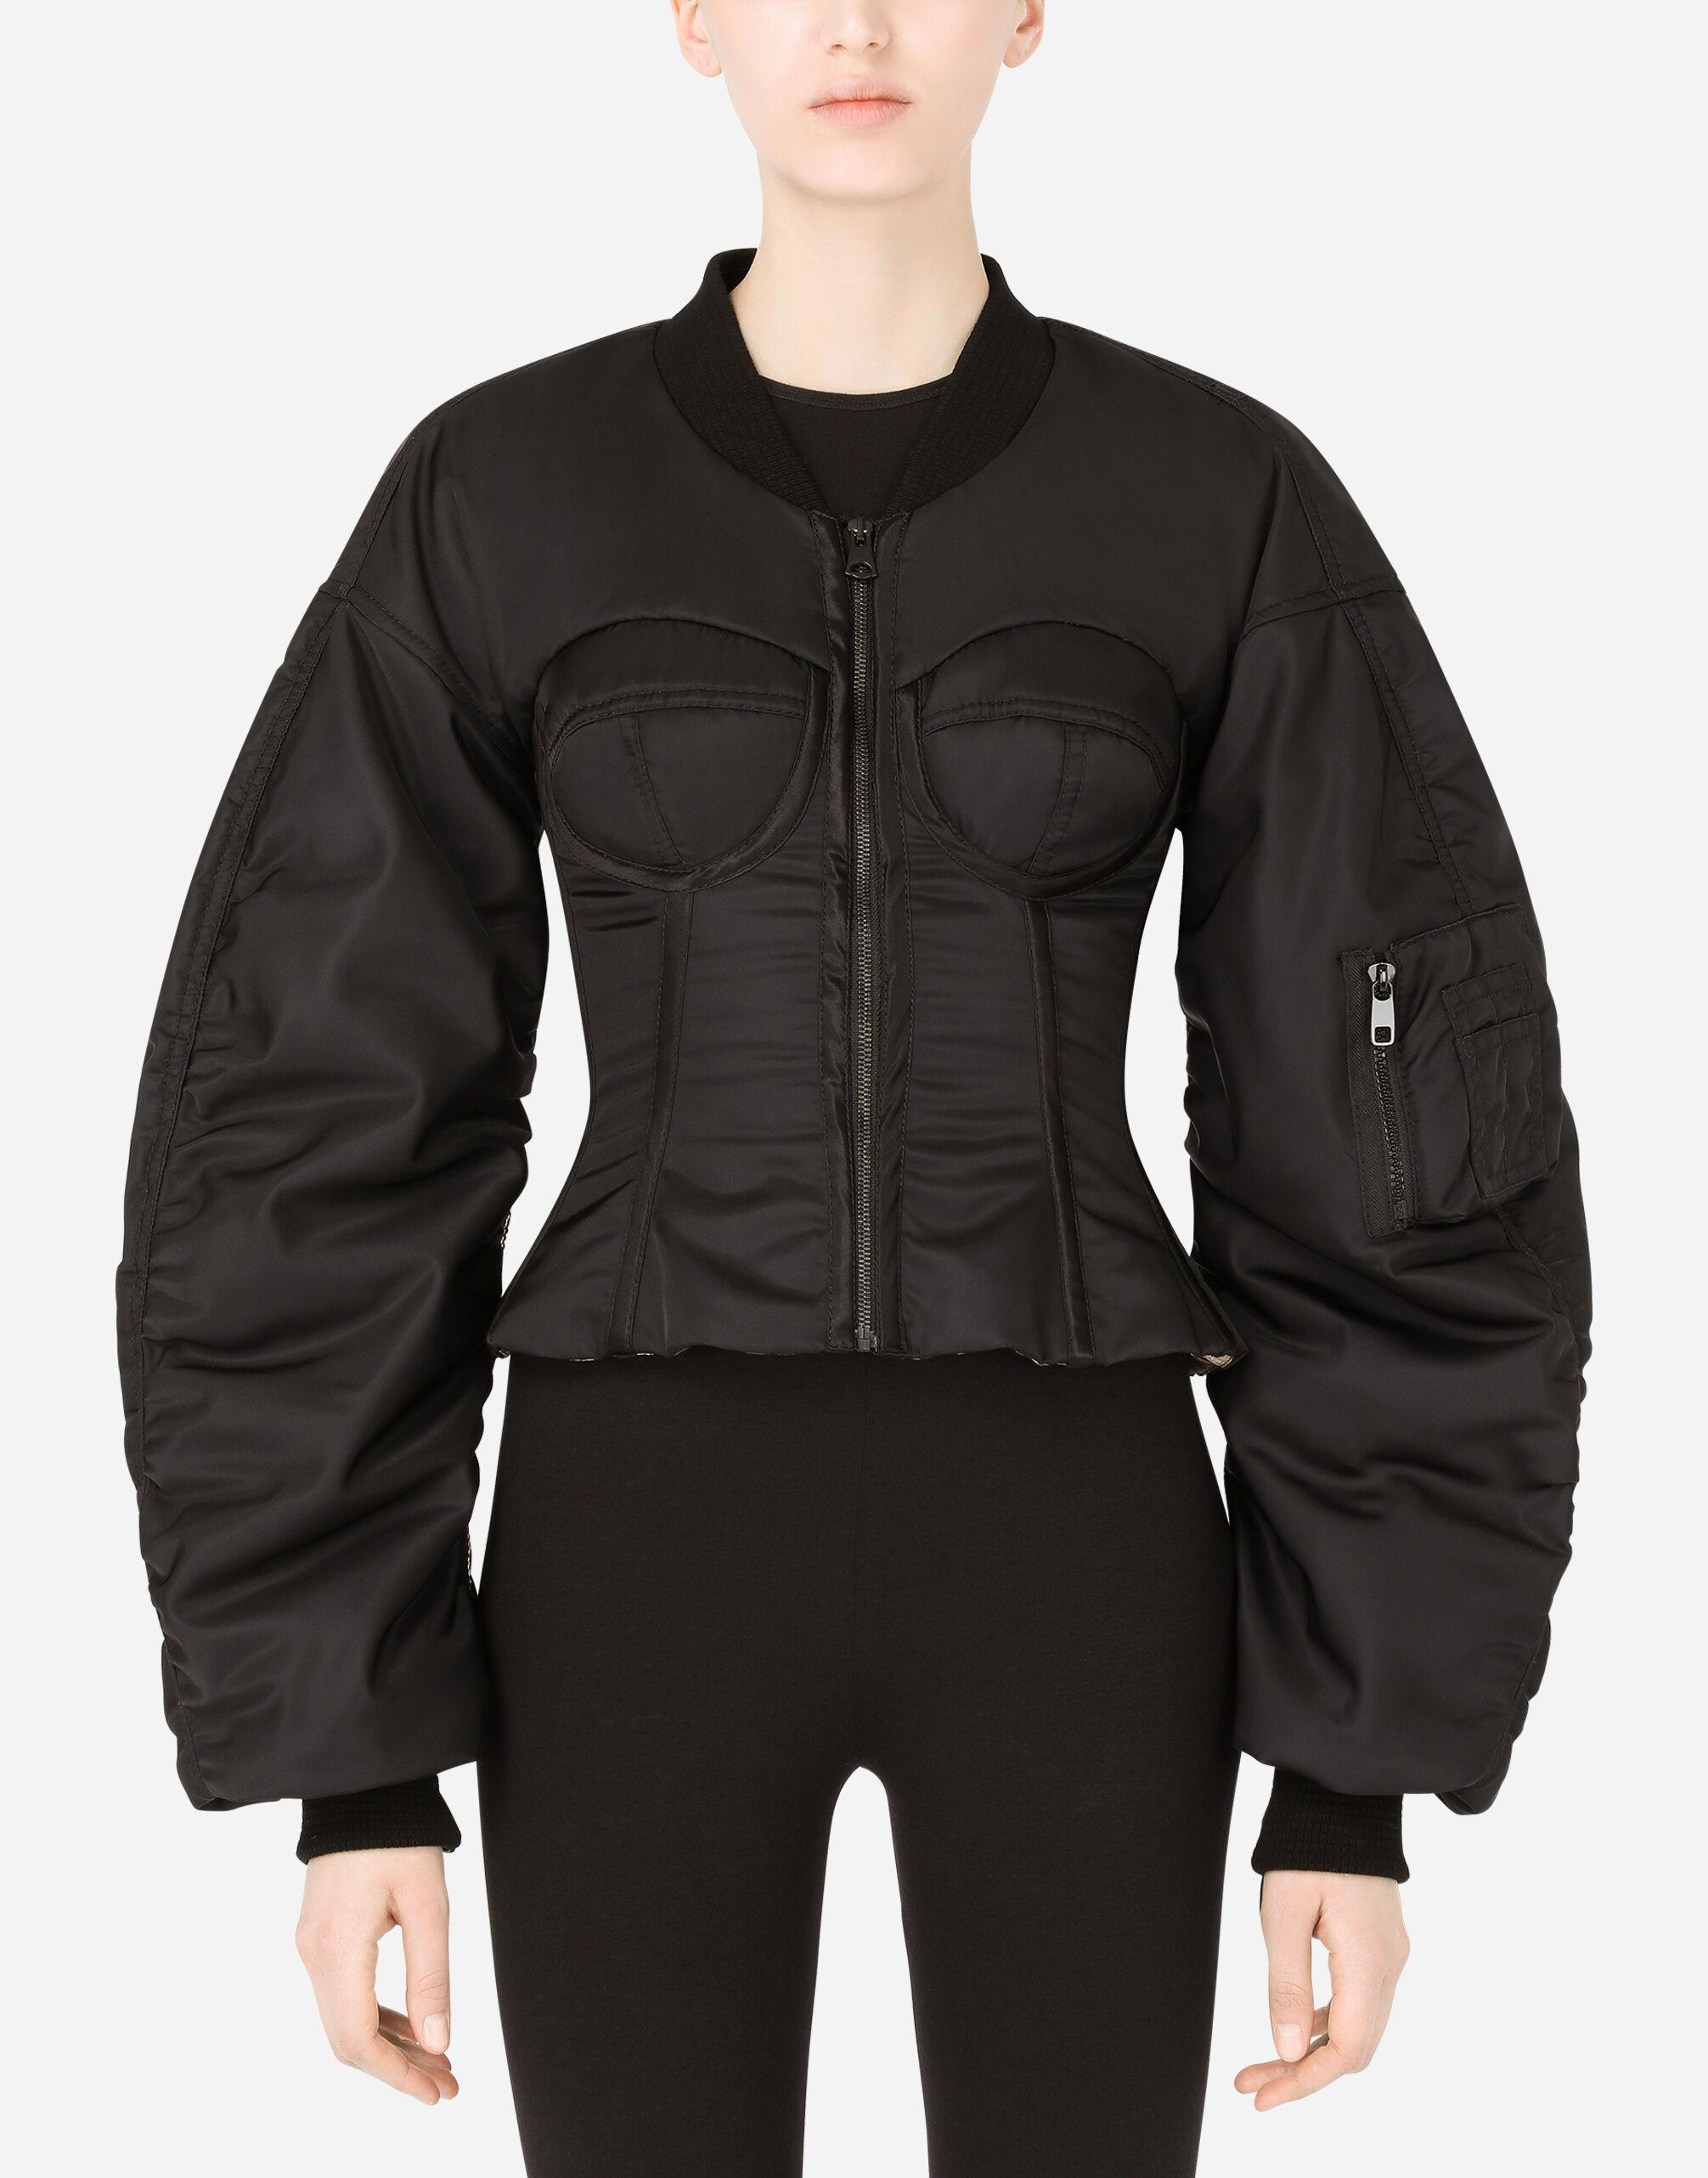 Nylon bomber jacket with bustier details